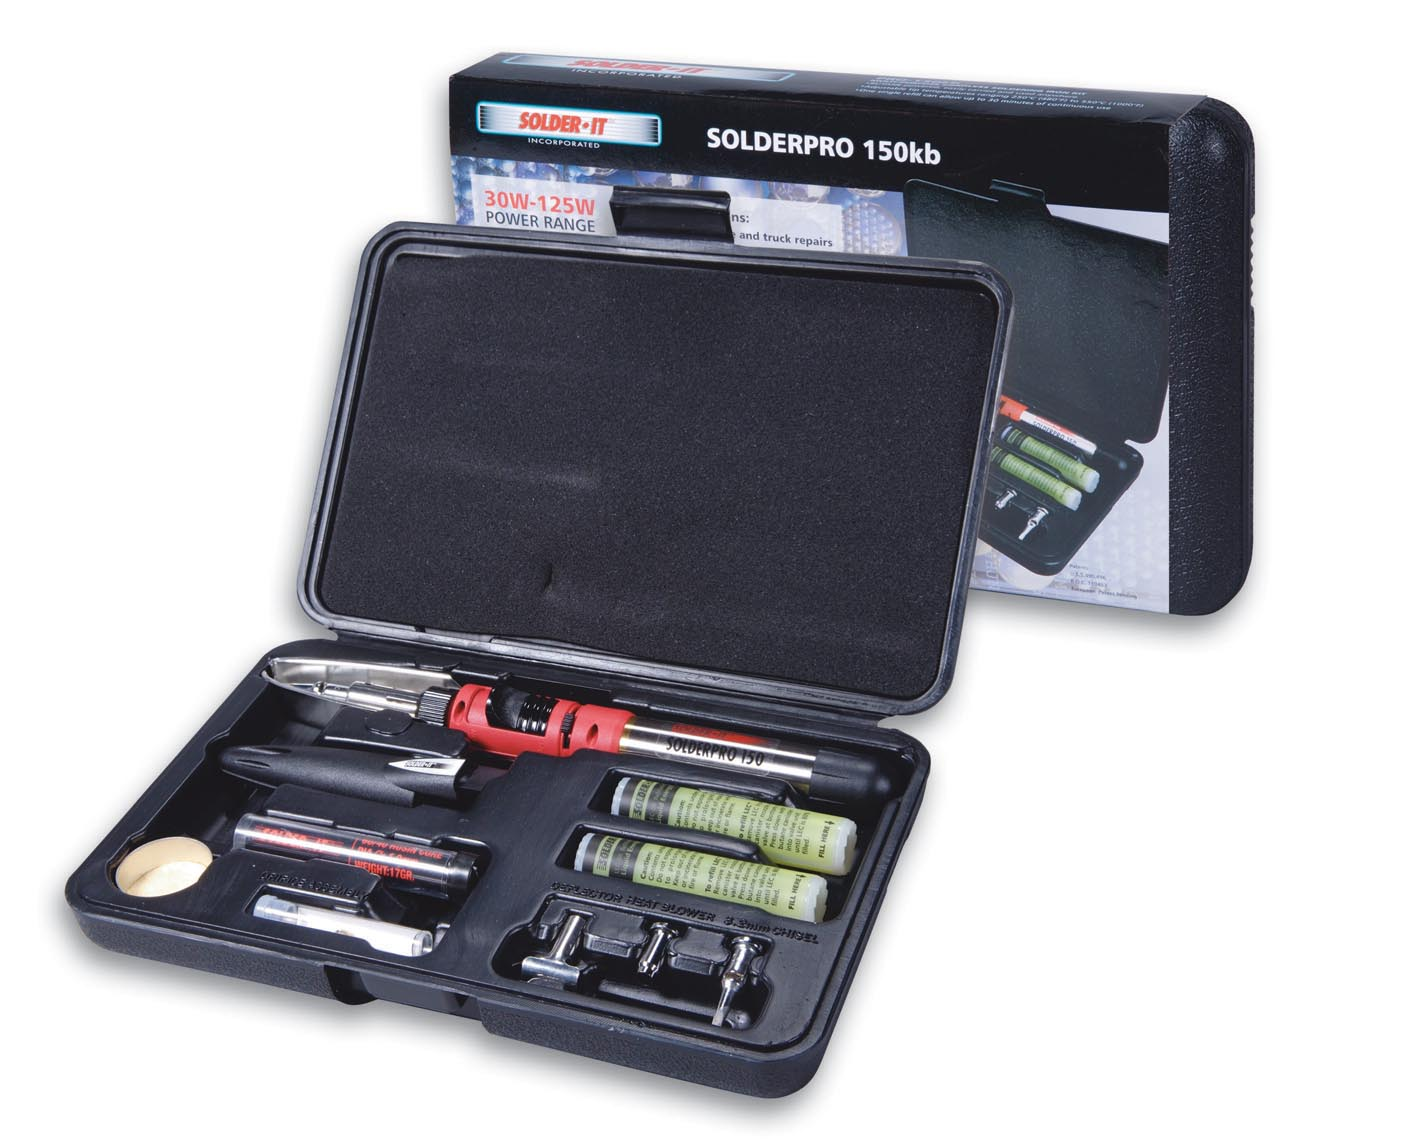 Image of SOLDERPRO 150 Automatic Ignition System Soldering Iron / Torch Multifunction Tool